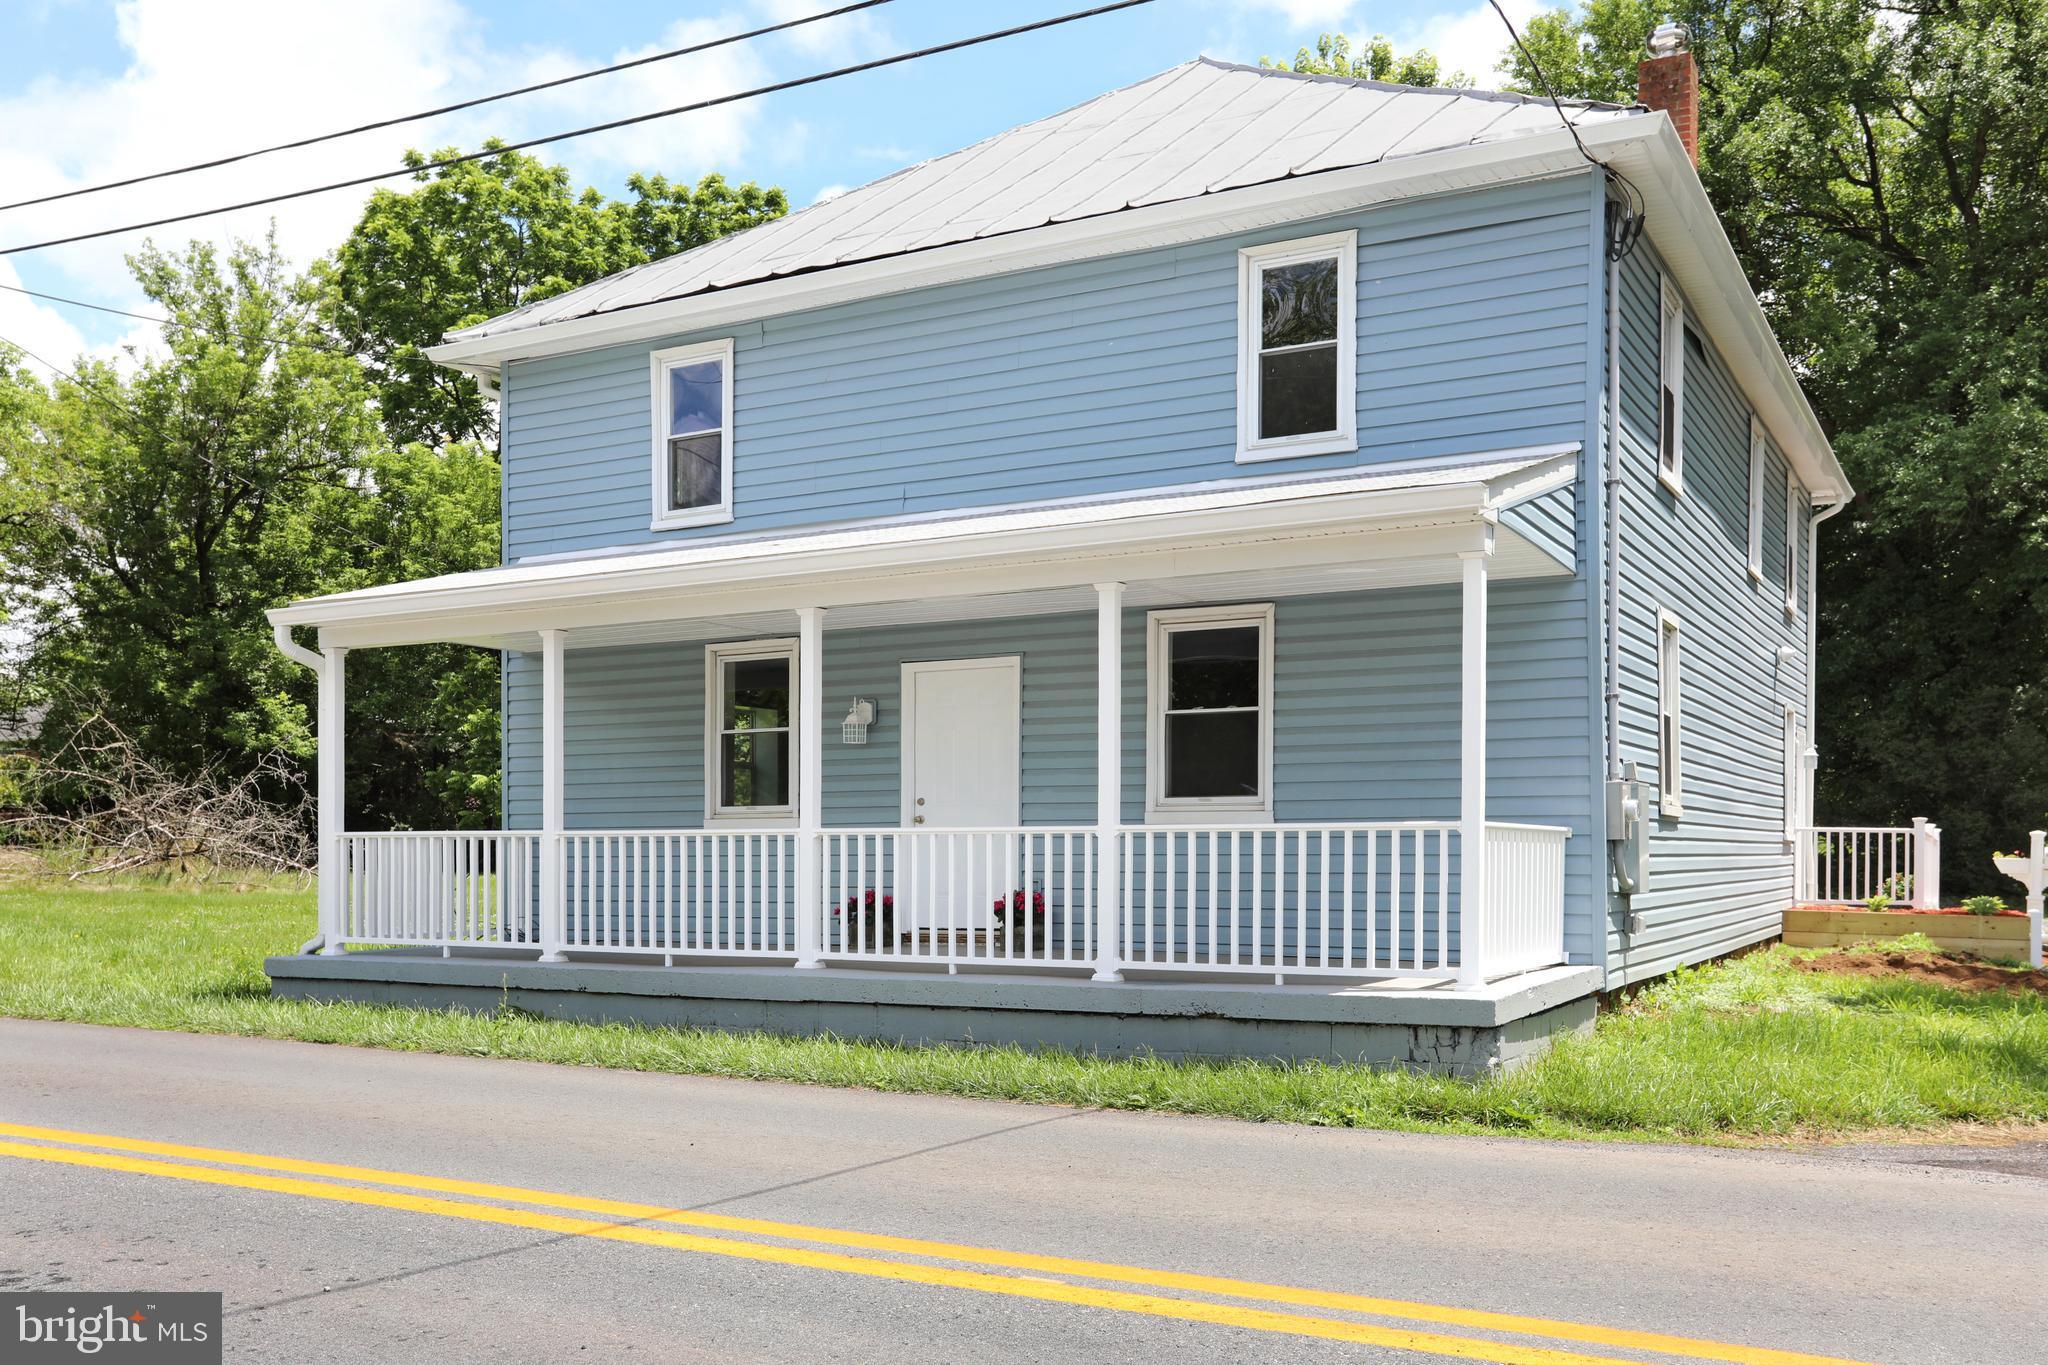 Modern farmhouse has been fully renovated 2019! Custom touches throughout. Expansive main level feat